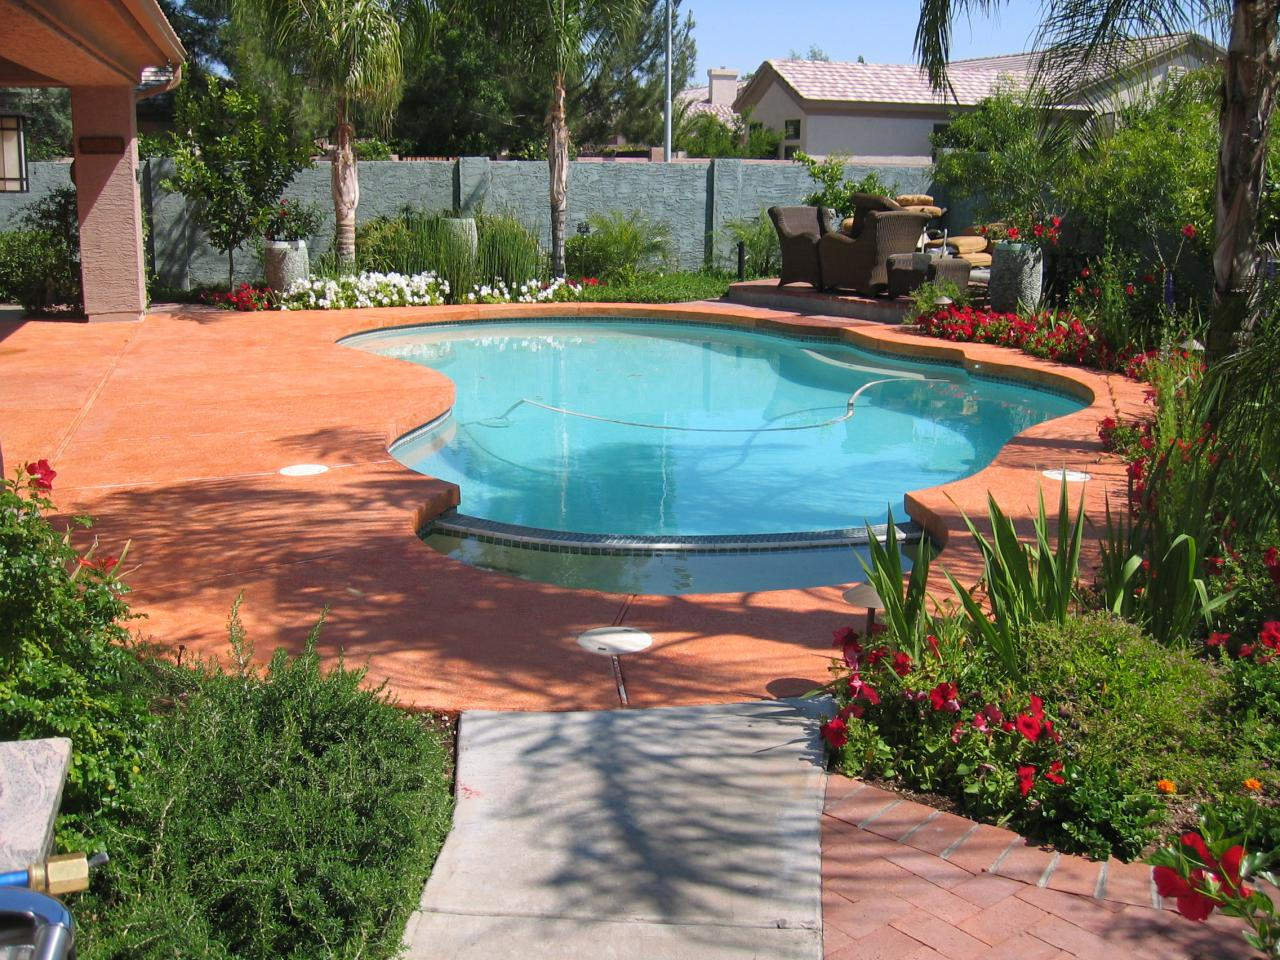 Fiberglass Pool Paint Home Depot